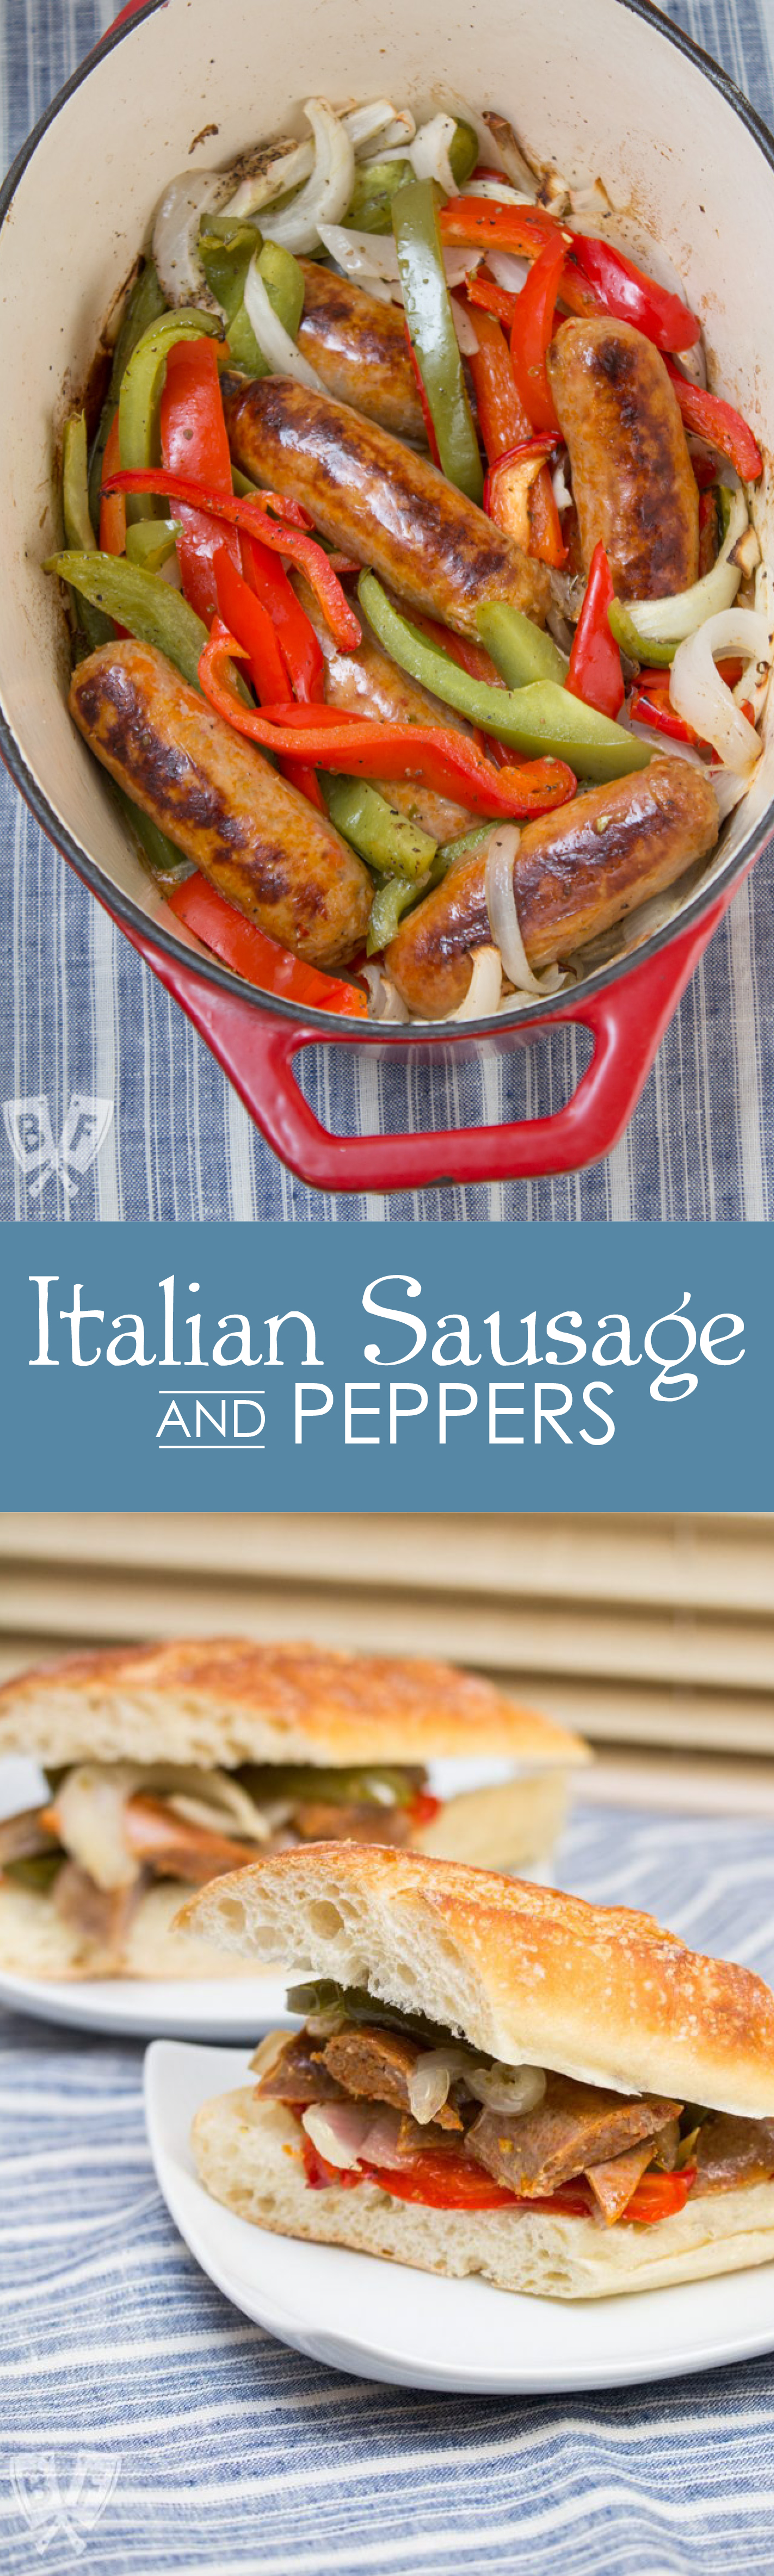 Sausage and Peppers is a simple, classic Italian comfort food recipe makes a perfect weeknight meal and is easily scaled up to feed a crowd. Inspired by my Calabrese father-in-law!